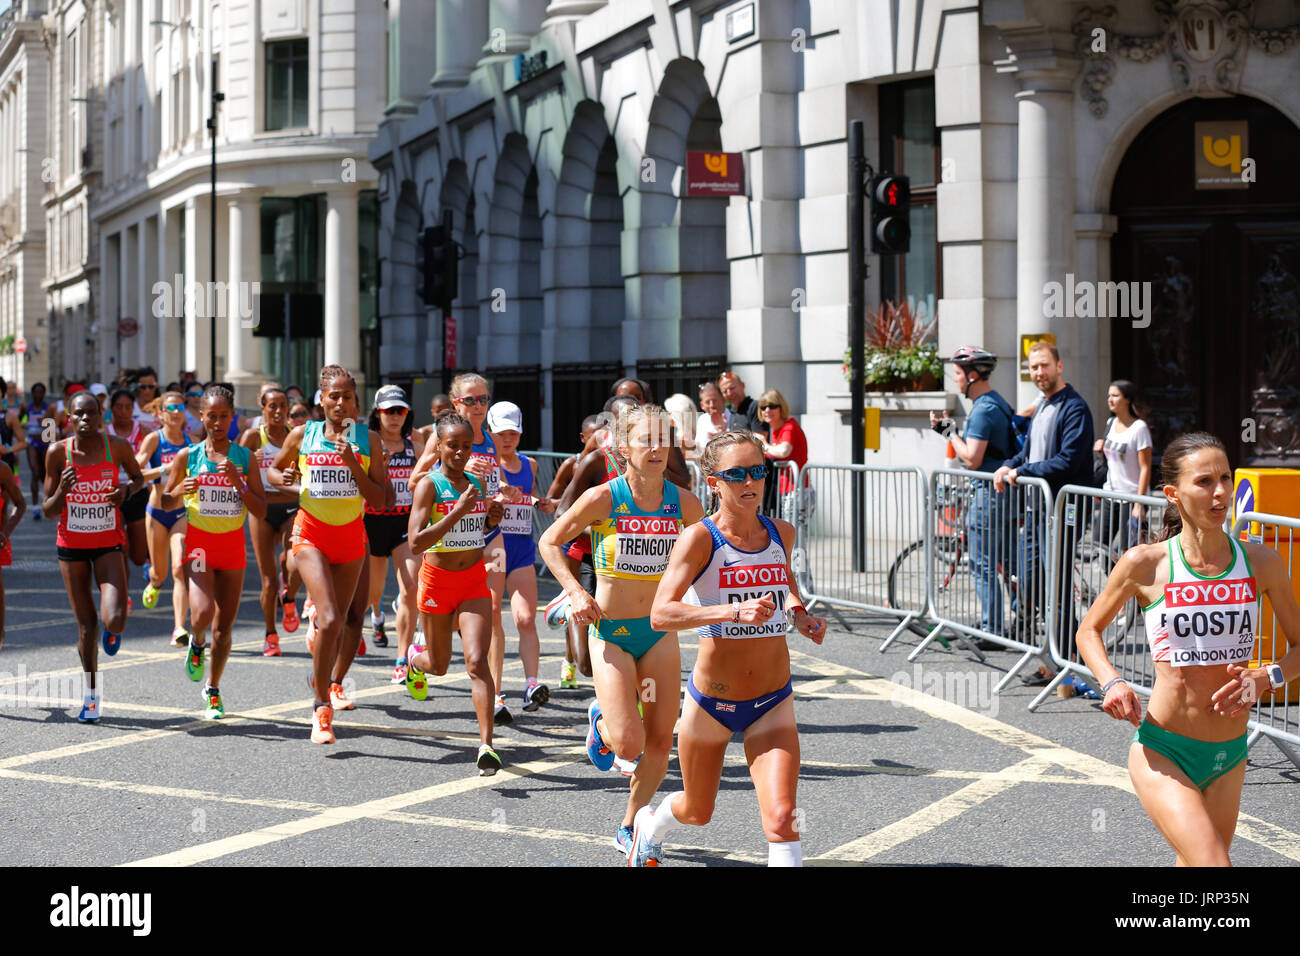 August 6th 2017 World Athletics Championship in London. IAAF women marathon 06/08/2017 started at 2pm local time. UK weather is perfect for a marathon with sun and few white clouds. Women running marathon are cometeing for a world champion title 2017. IAAF 2017 women marathon world champion and gold medal. Winner will be announced very soon. - Stock Image